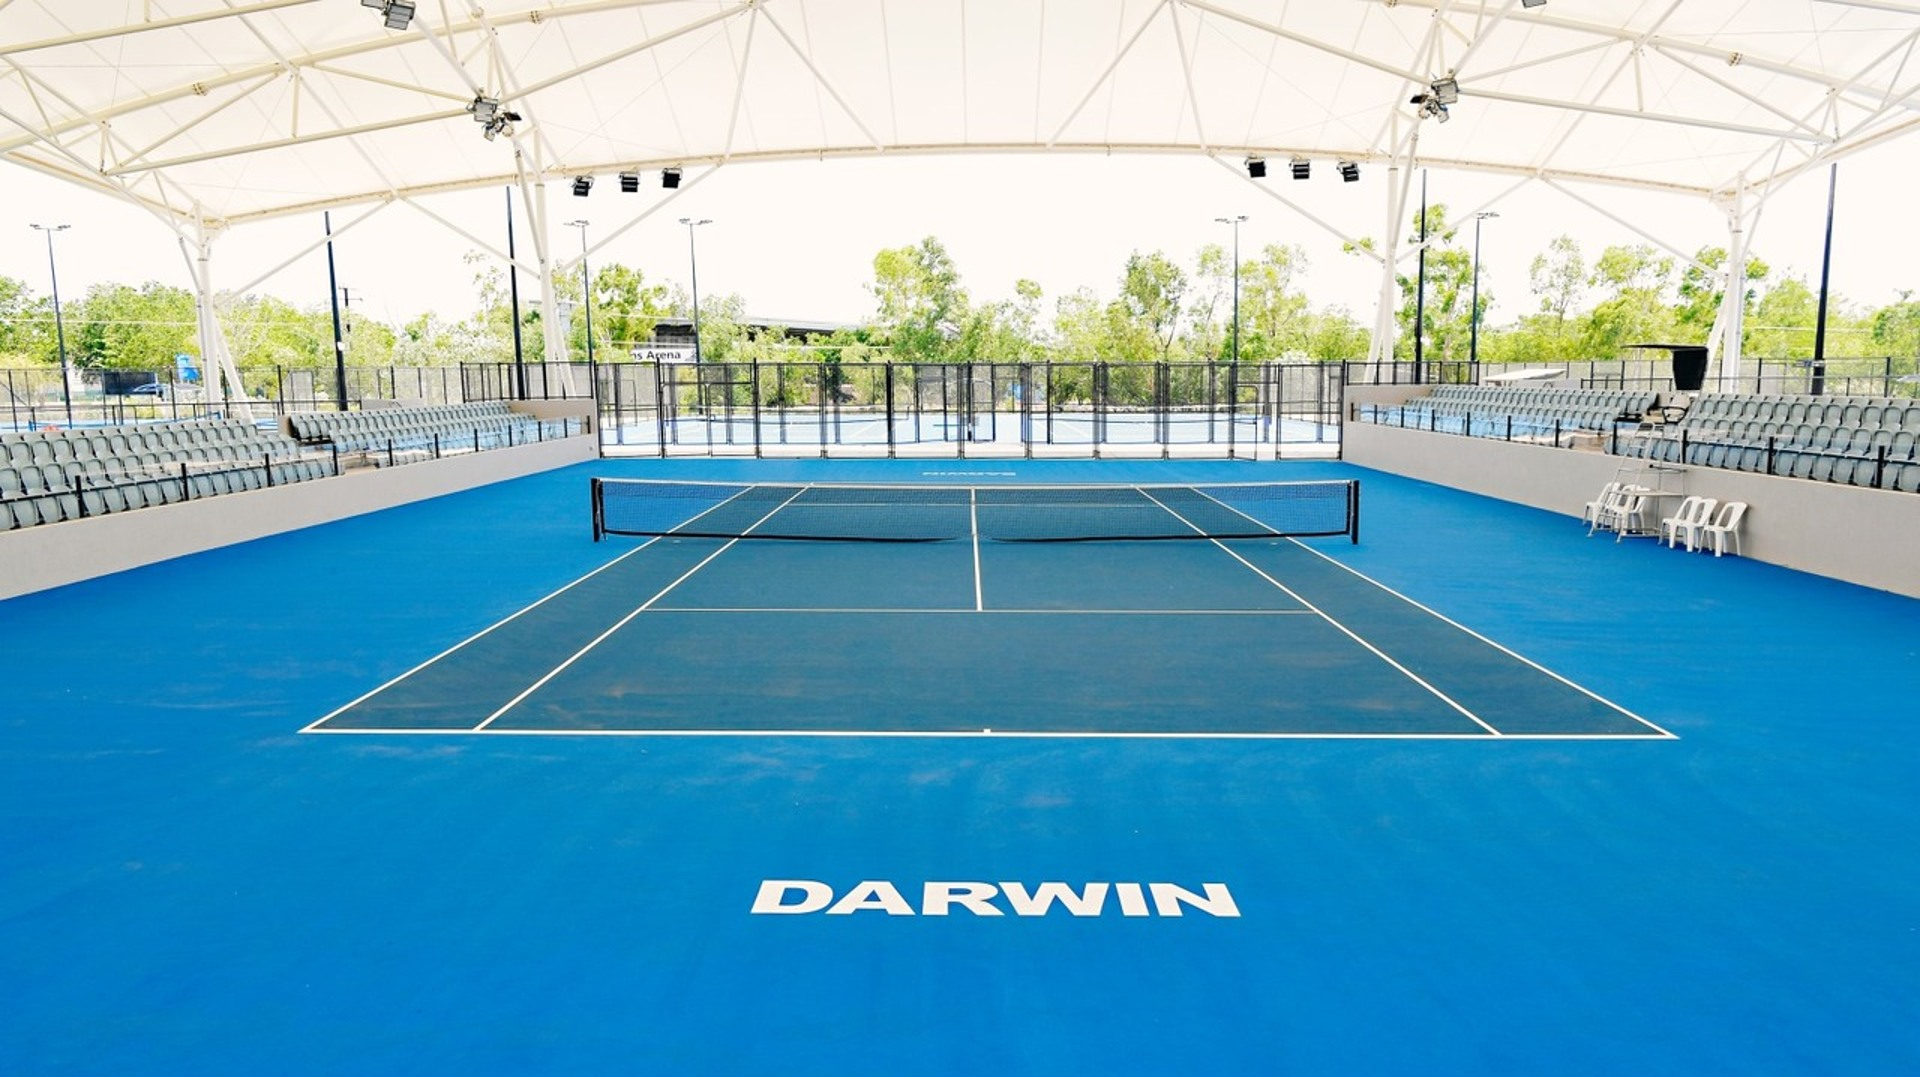 Darwin S 16 7 Million Tennis Centre Built On A Slope Sky News